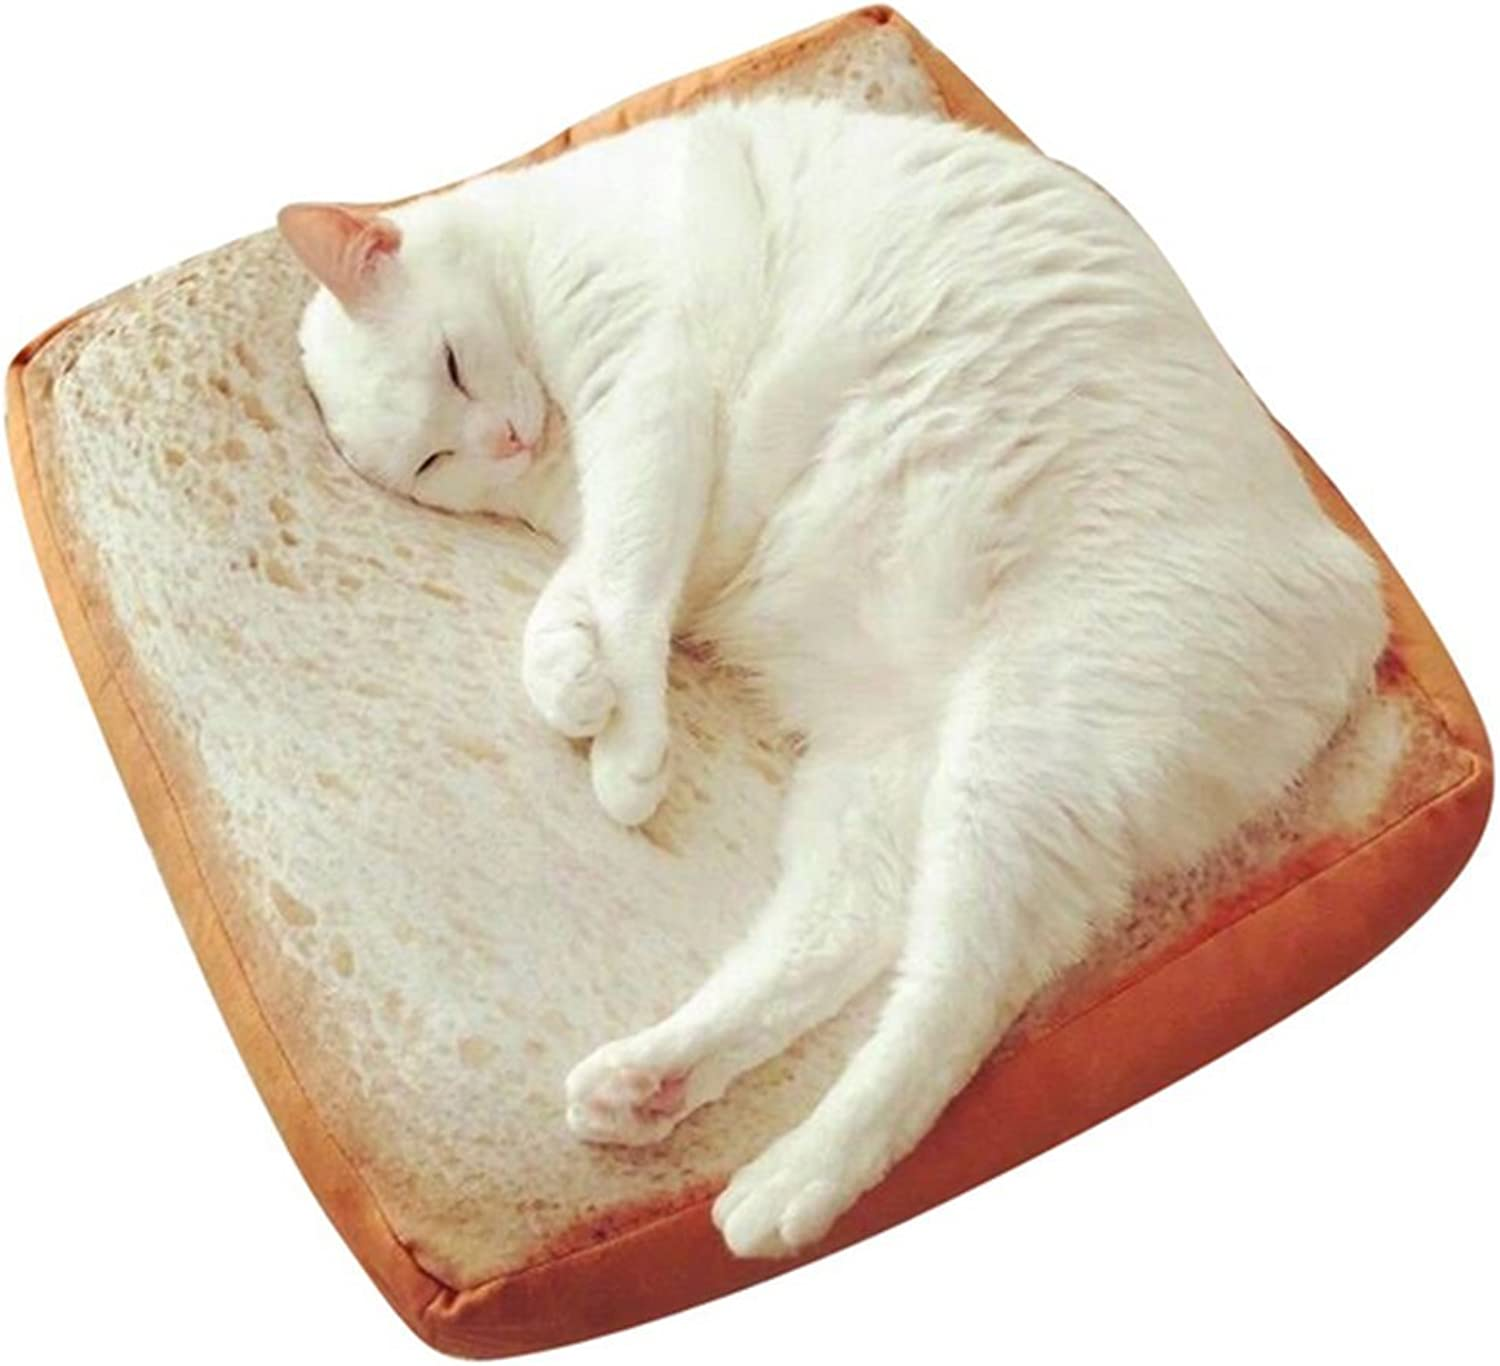 Cat Warmer Mat Toast Bread Slice Pet Cushion Soft Warm Mattress Nest Bed Kennel for Cats Dogs